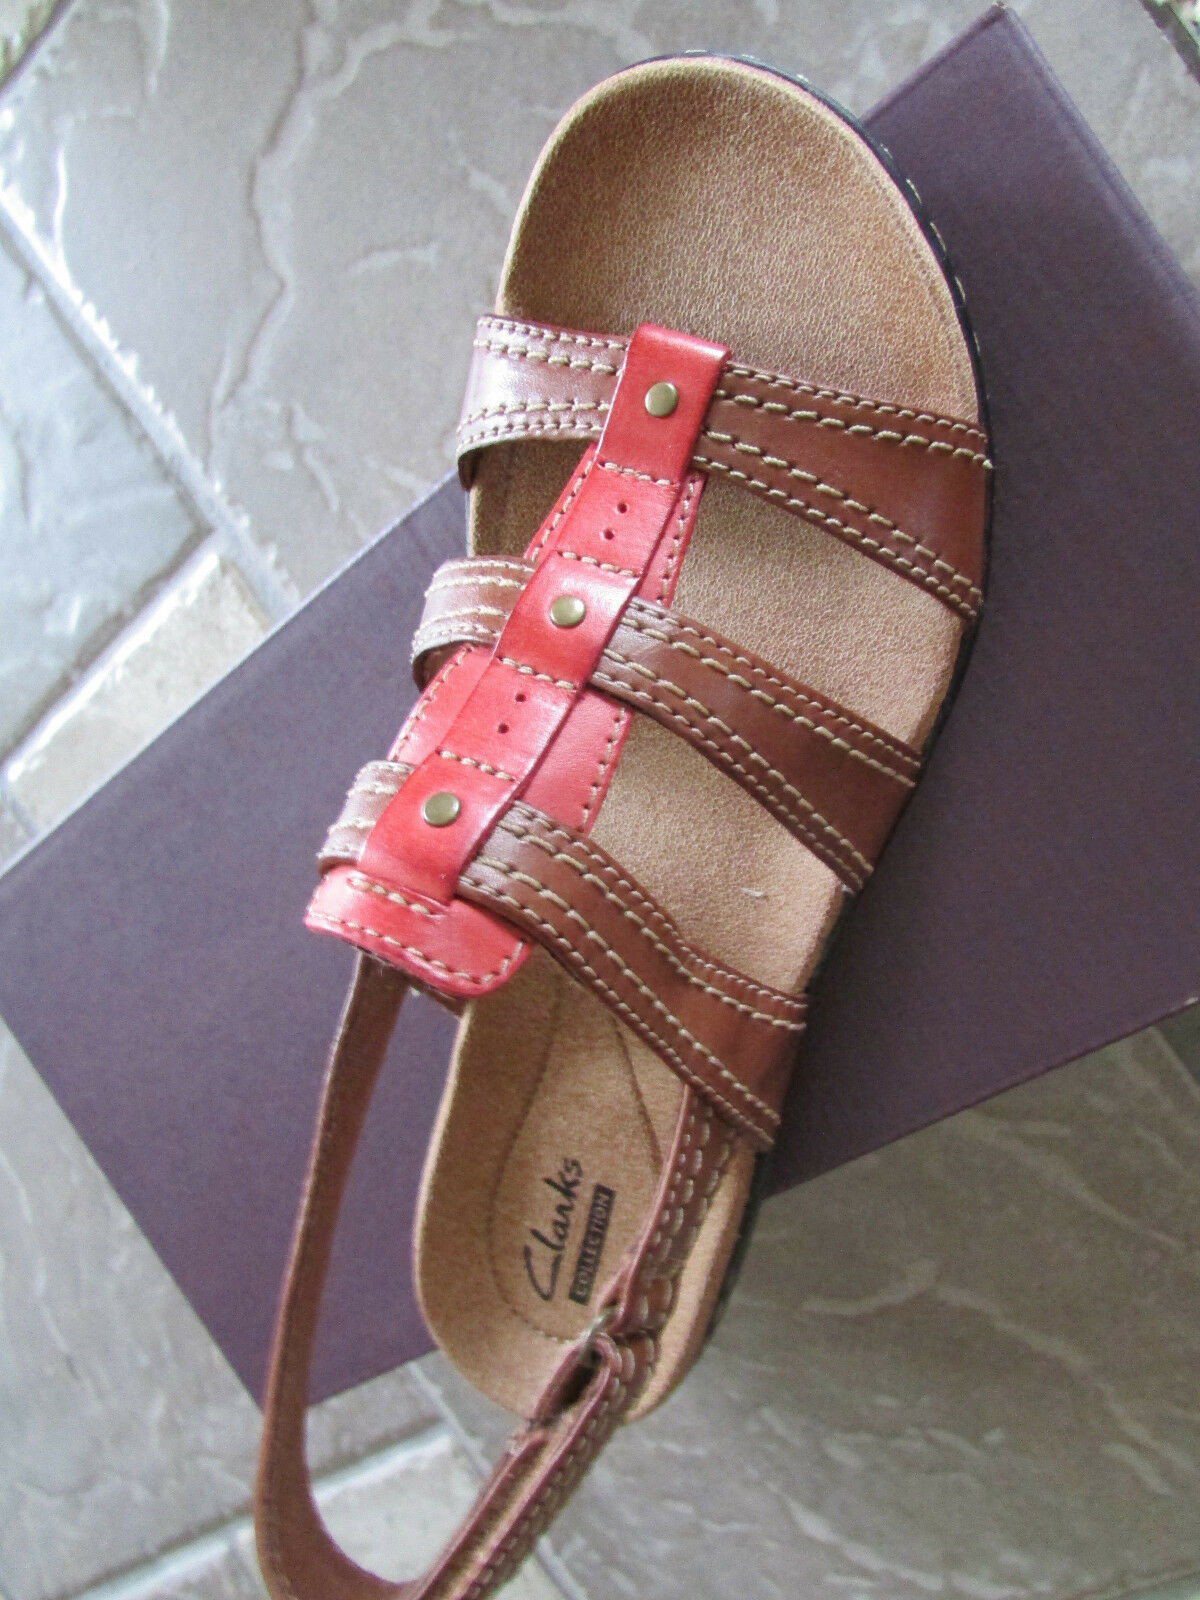 NEW CLARKS LEISA DAISY TAN STRAPPY SANDALS Damenschuhe SHIP 9 STYLE: 05194 FREE SHIP Damenschuhe 33d06d